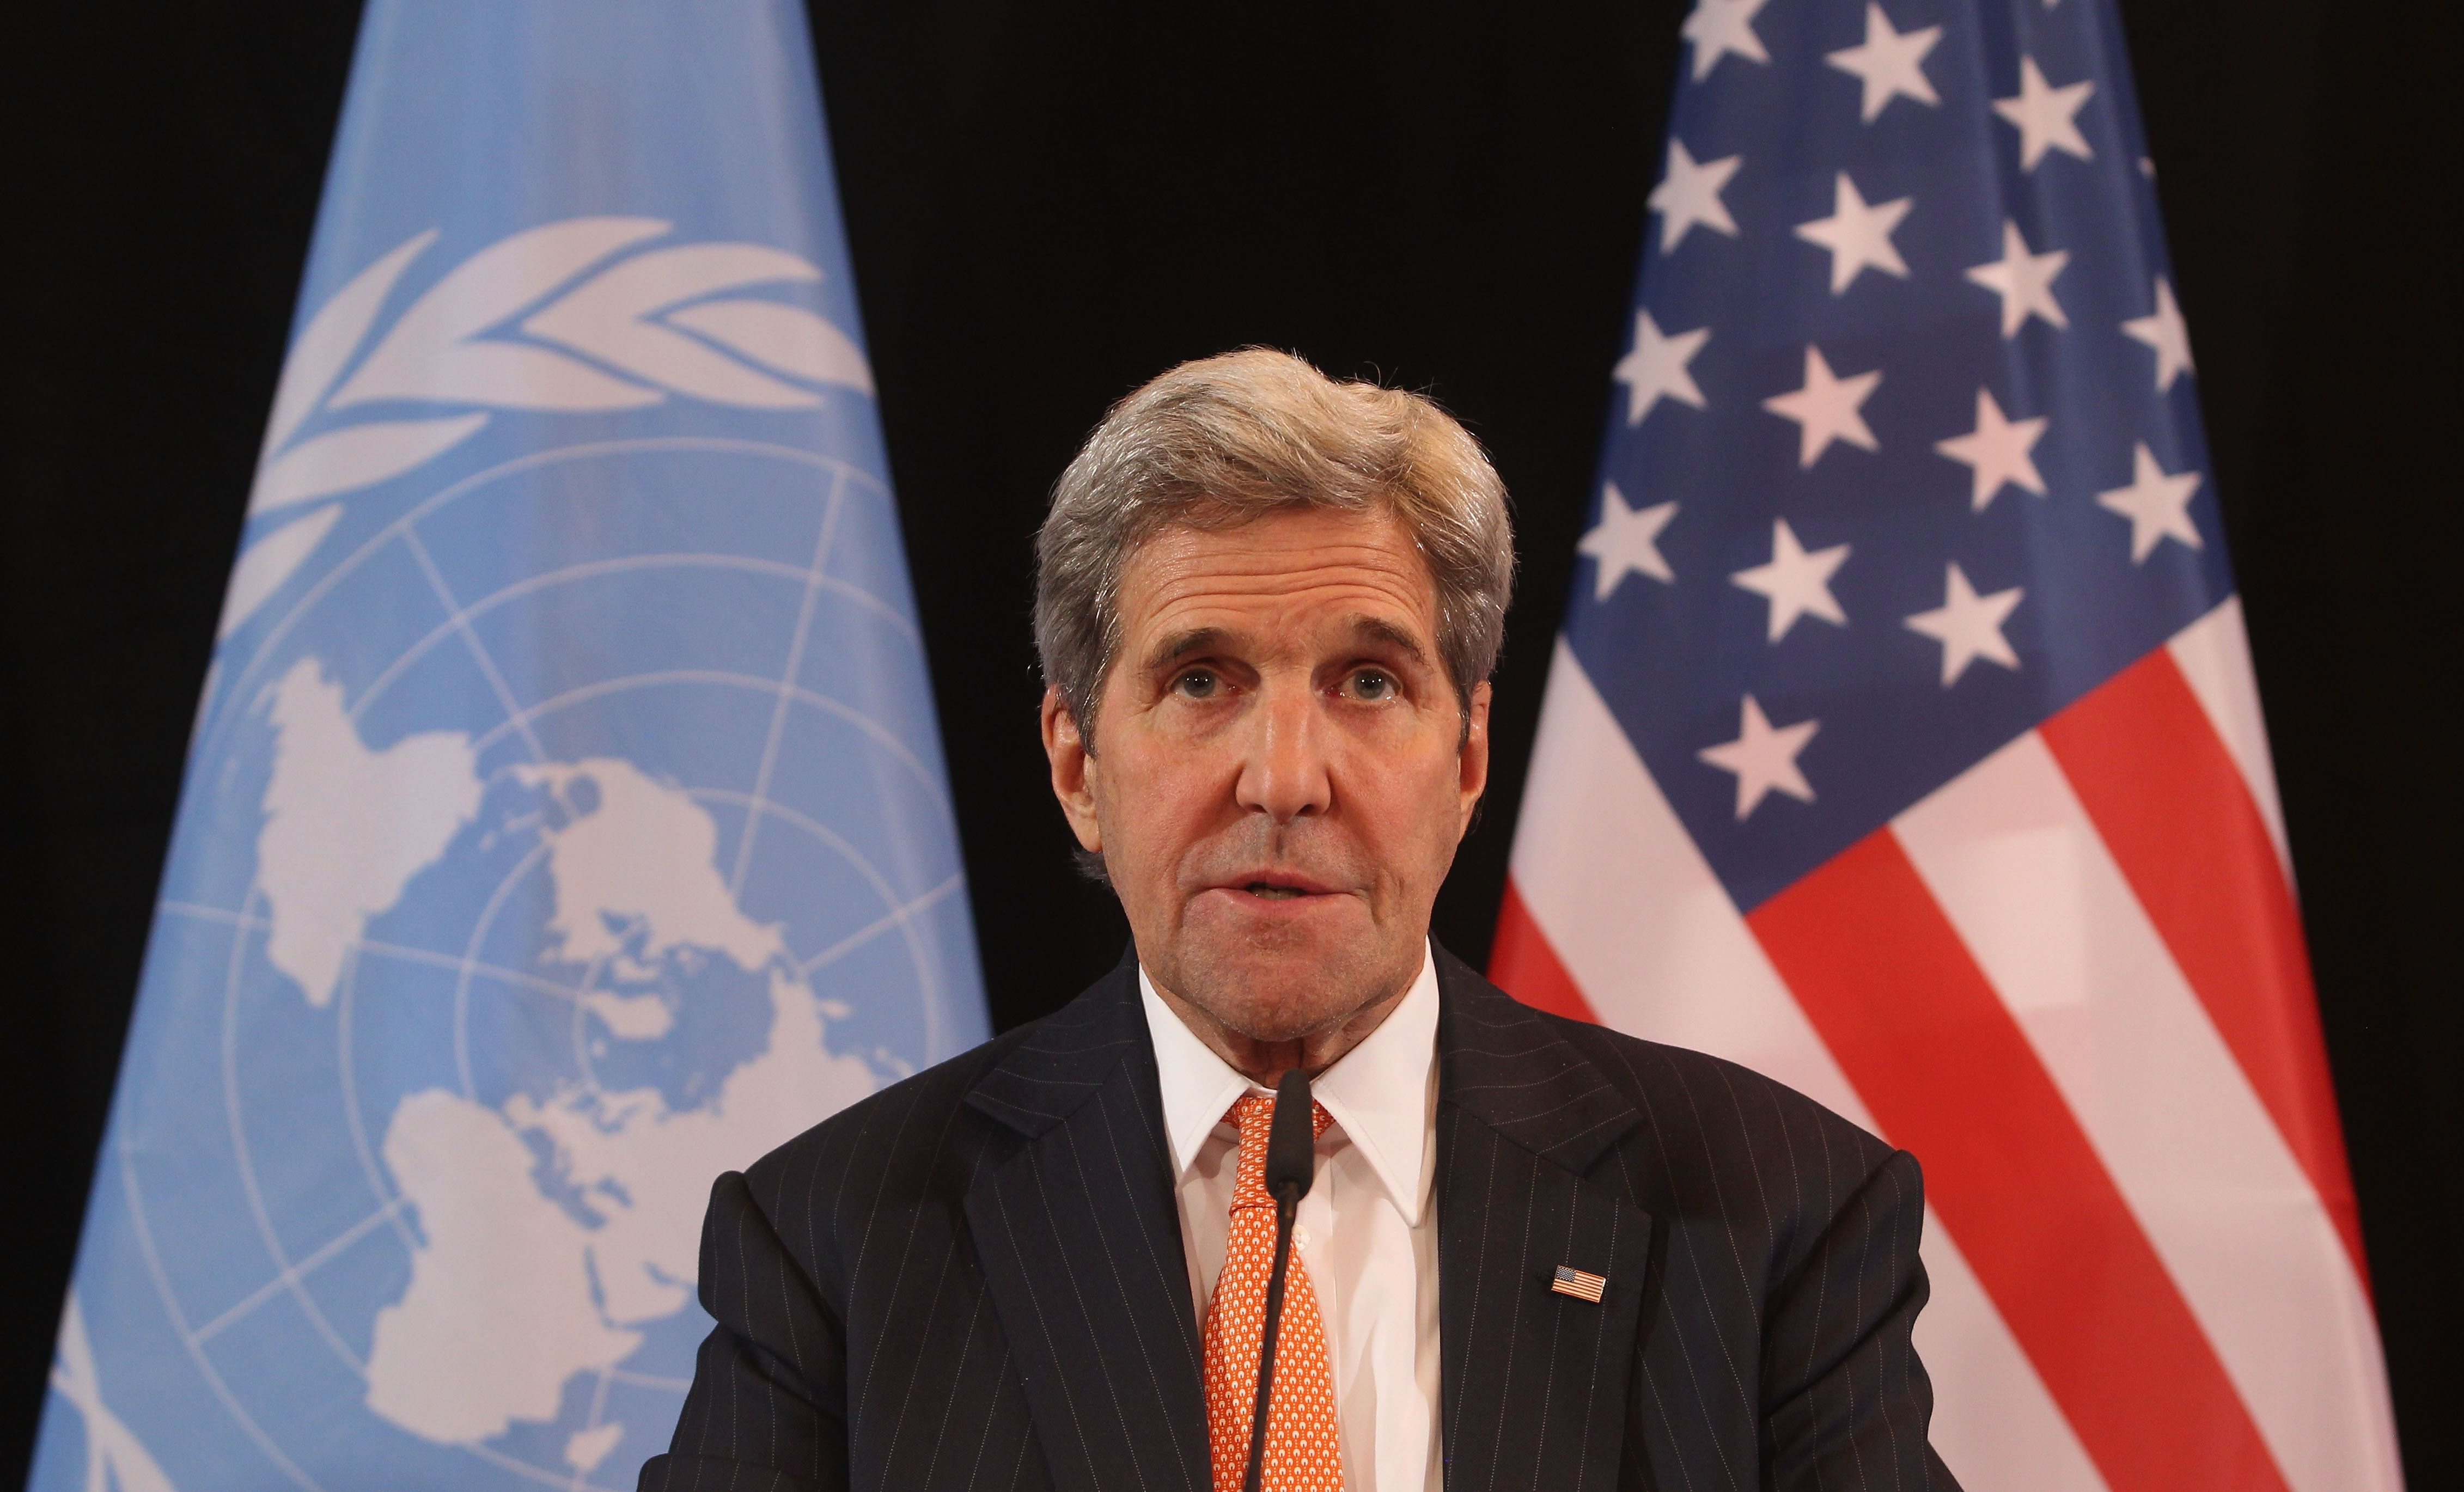 MUNICH, GERMANY - FEBRUARY 11:  US Secretary of State John Kerry speaks during a press conference following a meeting of the International Syrian Support Group (ISSG) on February 11, 2016 in Munich, Germany. ISSG met in Munich ahead of the International Munich Security Conference to further discuss a peaceful solution in the Syria war.  (Photo by Alexandra Beier/Getty Images)